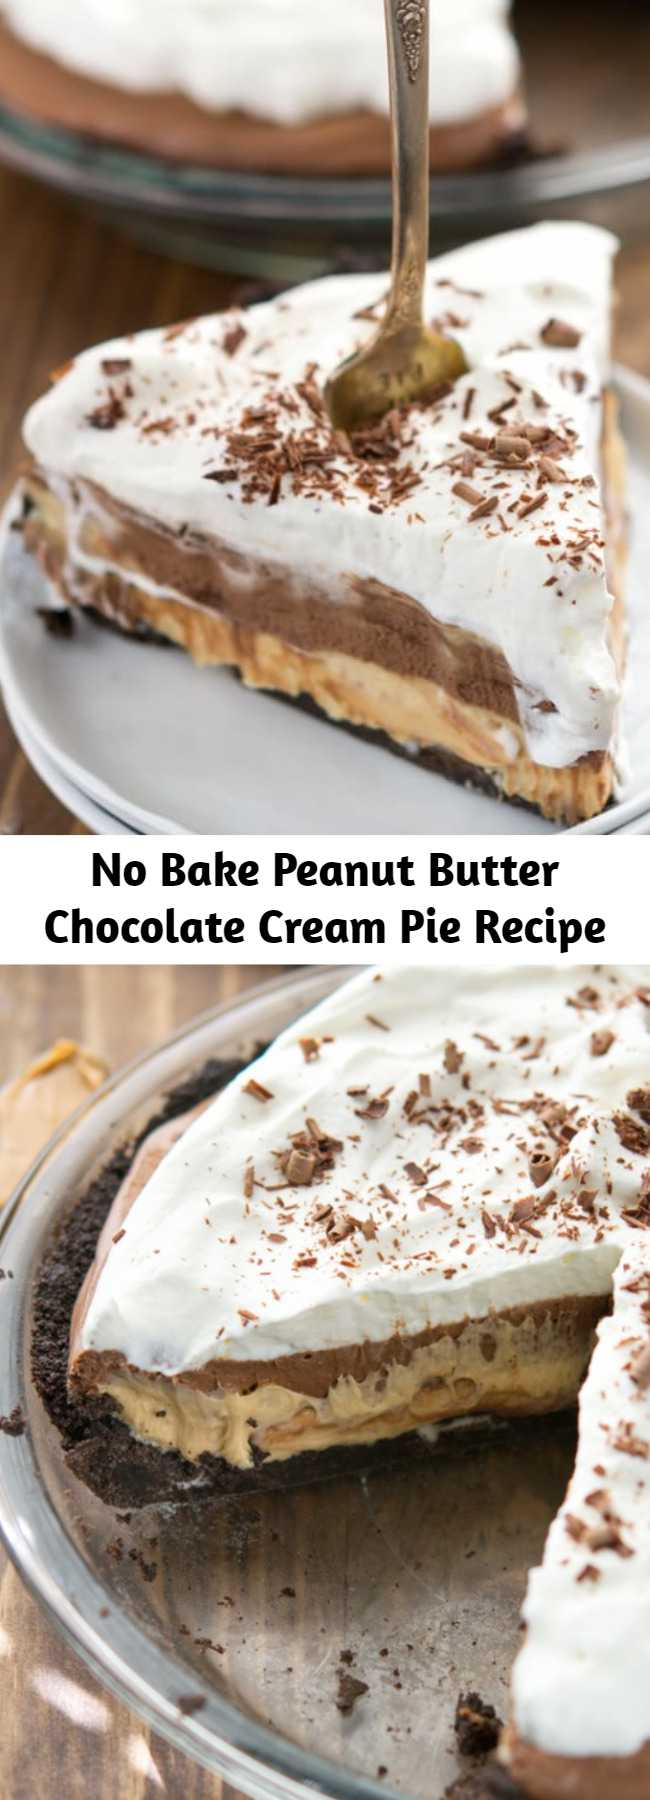 No Bake Peanut Butter Chocolate Cream Pie Recipe - Layers of Oreo crust, peanut butter, and chocolate cream pair perfectly for the best pie I've ever eaten! The best part is it's totally no bake and egg-free! I just can't even express how good it was. Words like decadent, amazing, creamy, and delicious just don't seem to suffice. Because it was better than all of those words.